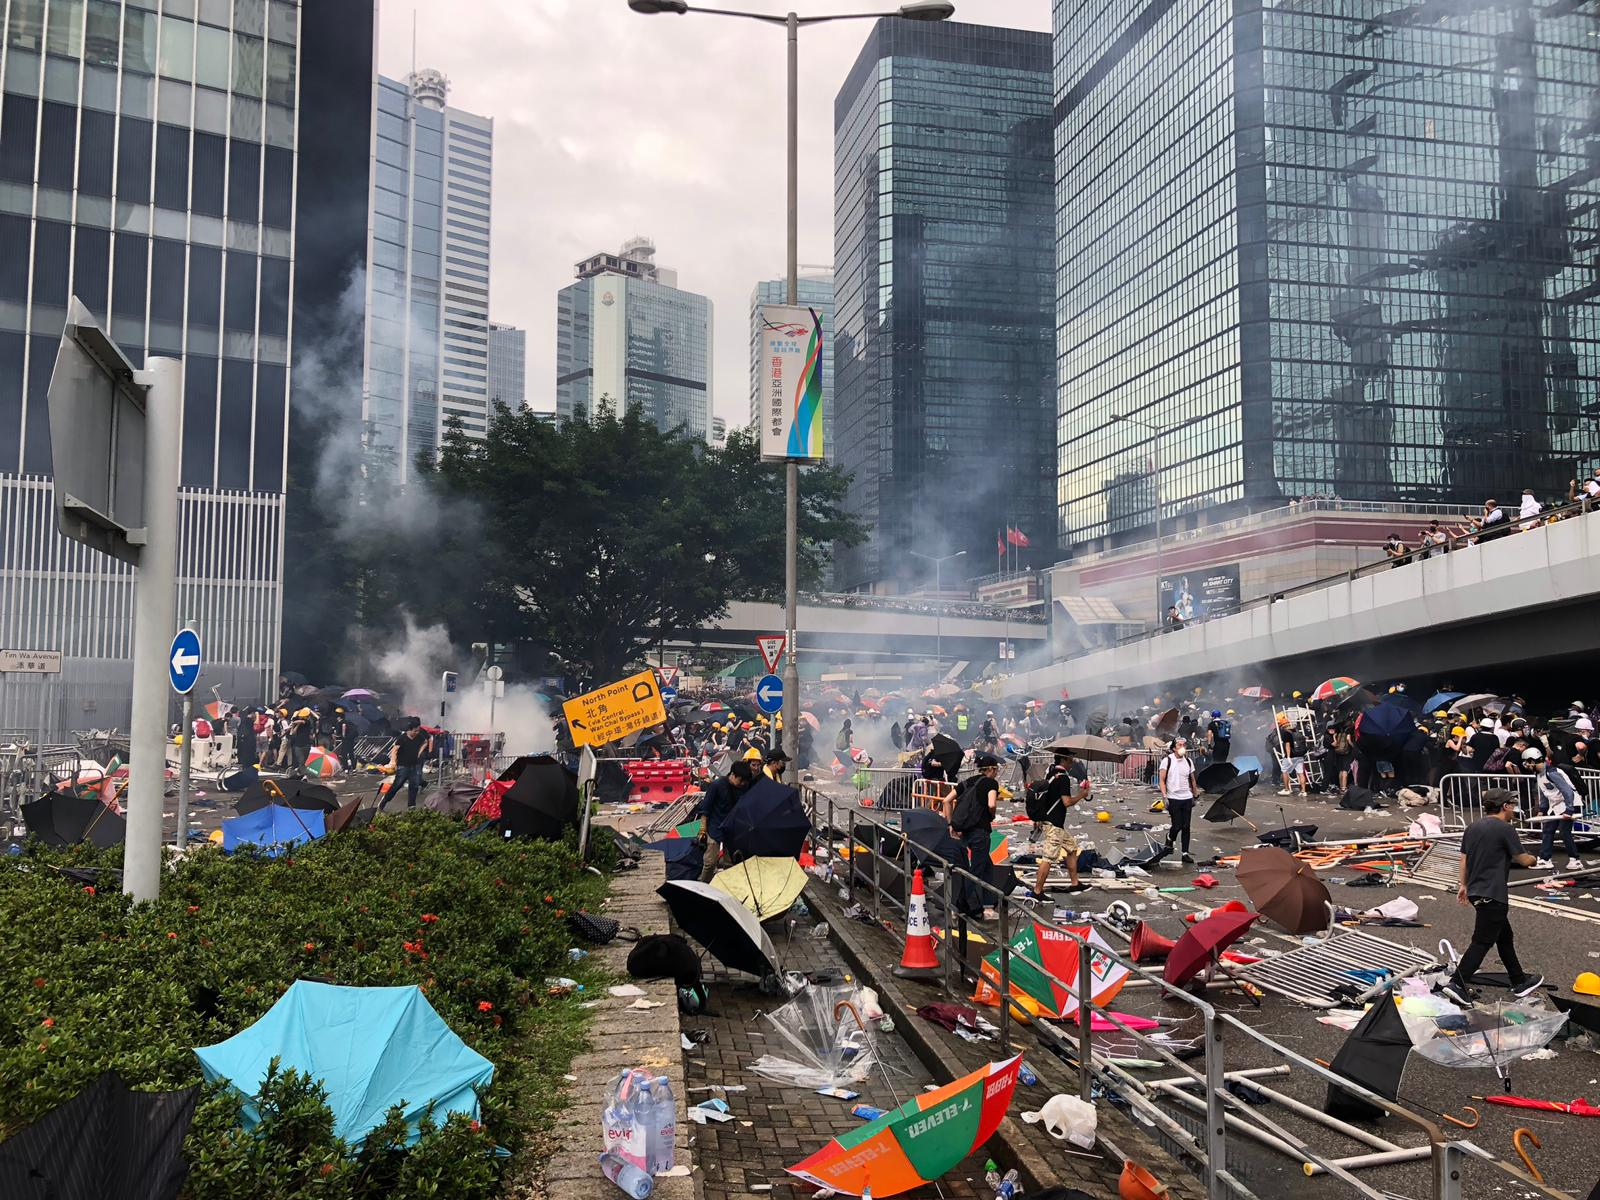 Tear gas can be seen on Harcourt Road, near to the Legislative Council building.